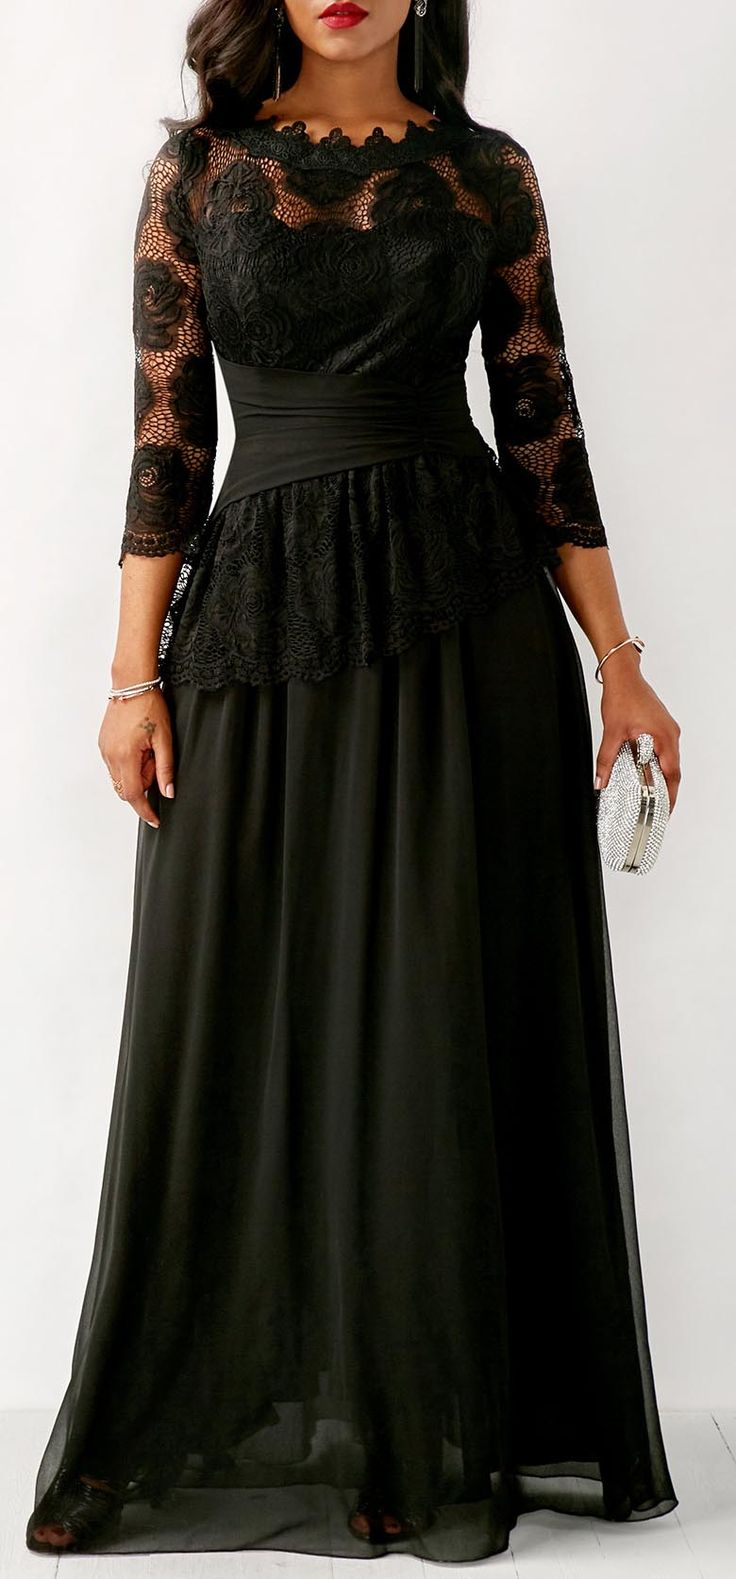 Chiffon Three Quarter Sleeve Maxi Dress.